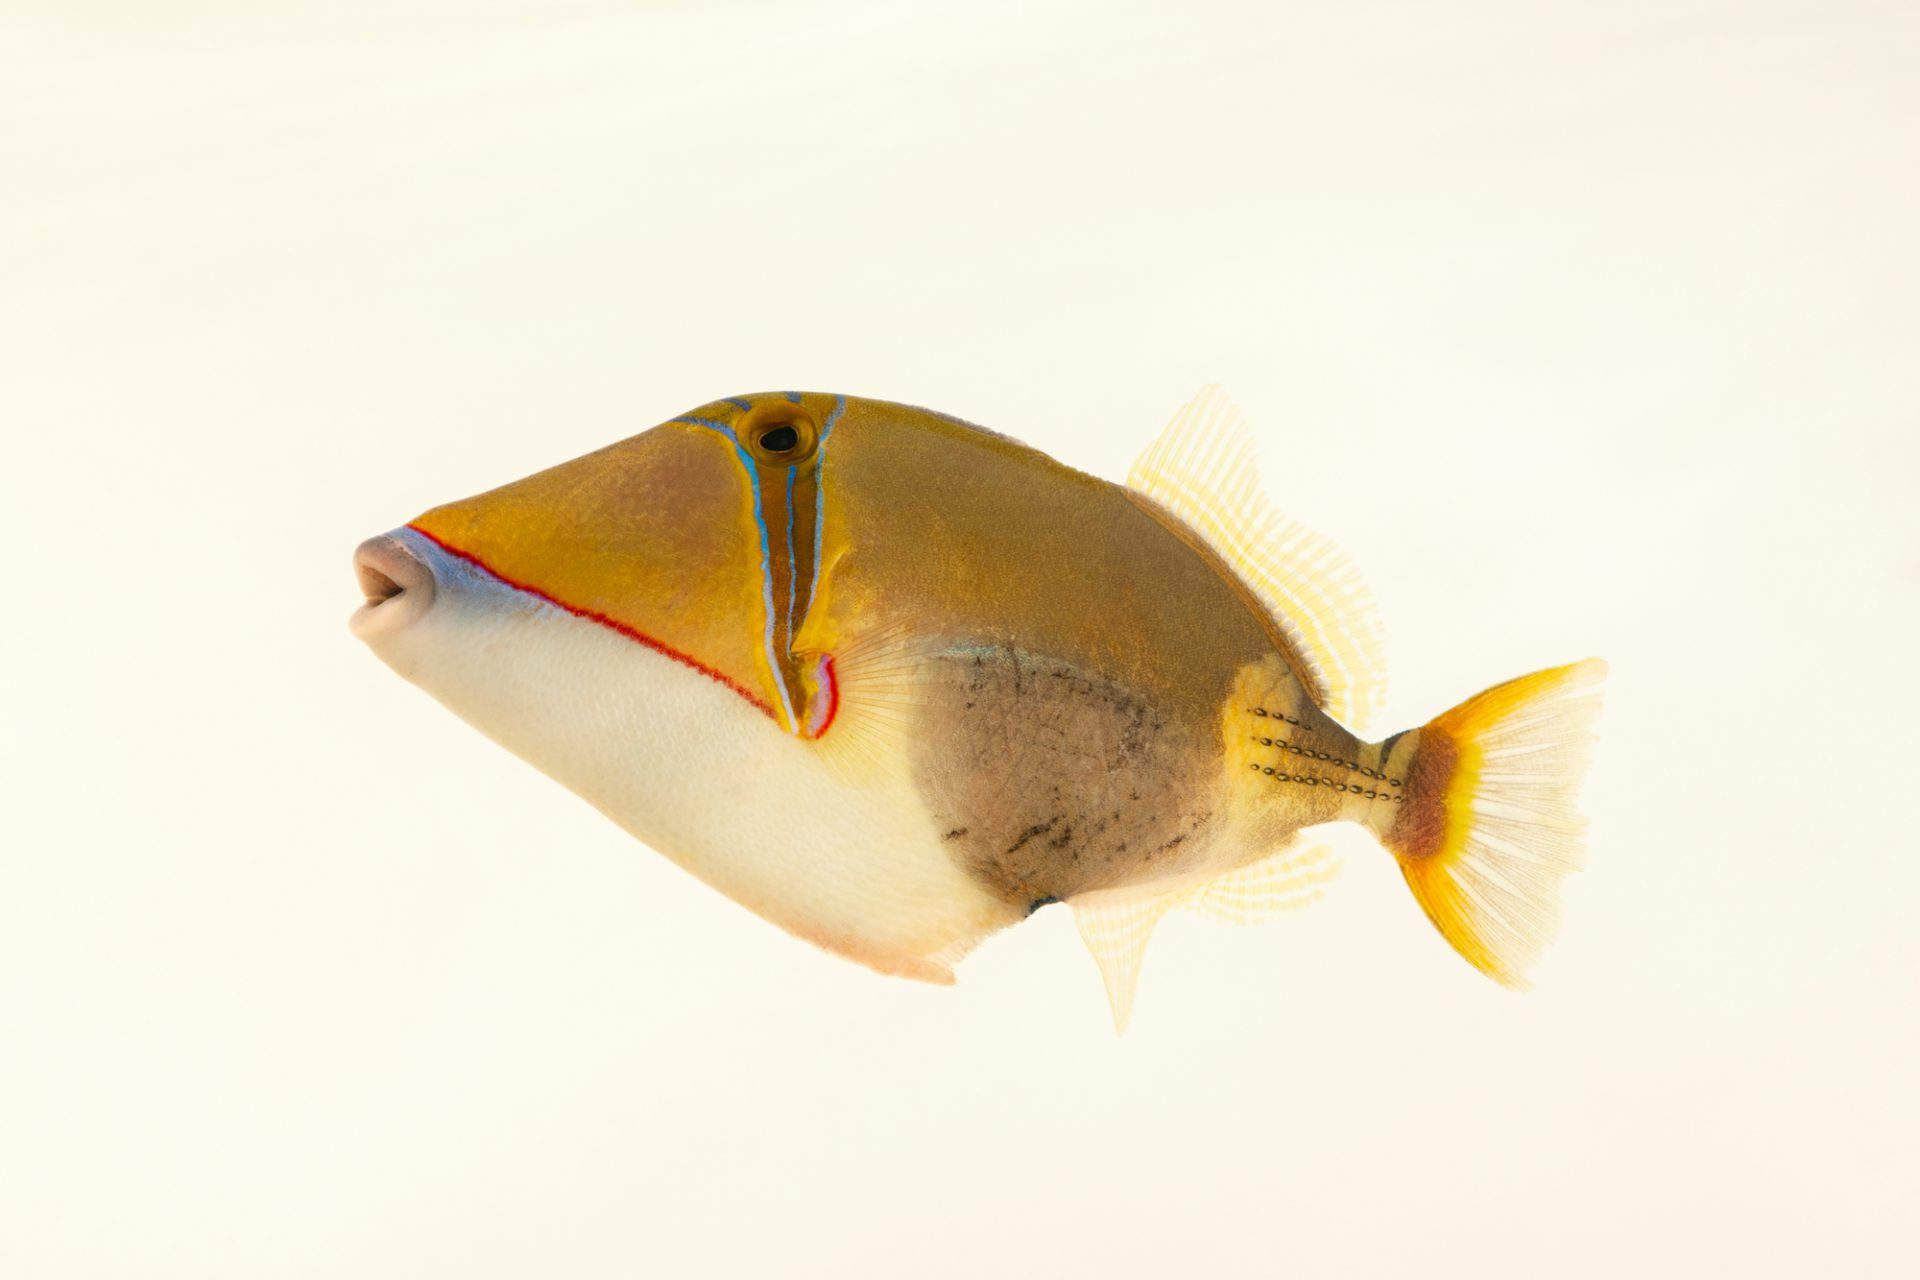 Photo: A blackbelly triggerfish (Rhinecanthus verrucosus) at Semirara Marine Hatchery Laboratory in the Philippines.